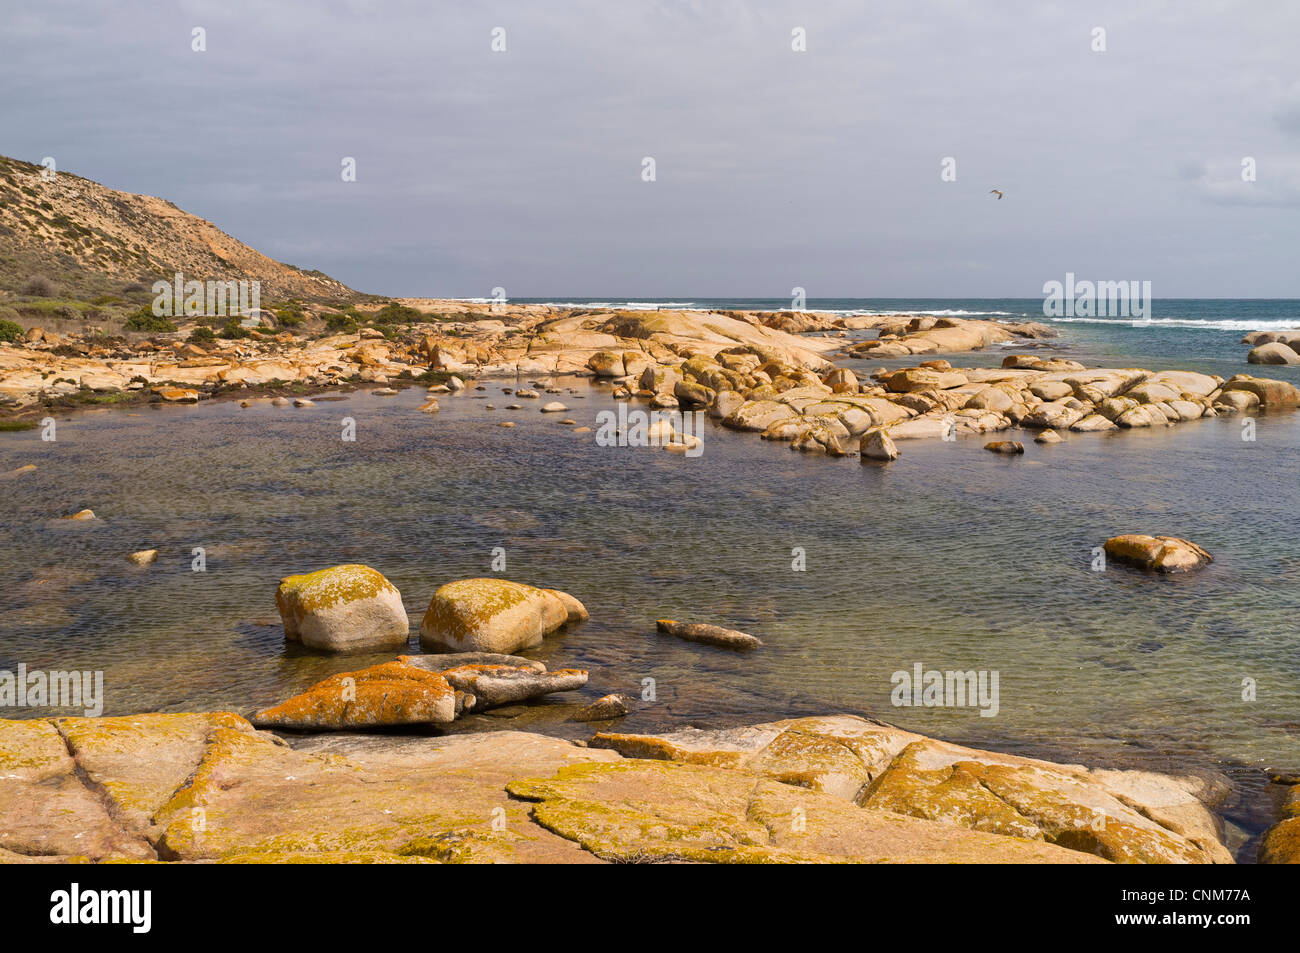 The Granites at Westall Bay on the Great Australian Bight near Streaky Bay on the west coast of the Eyre Peninsula - Stock Image